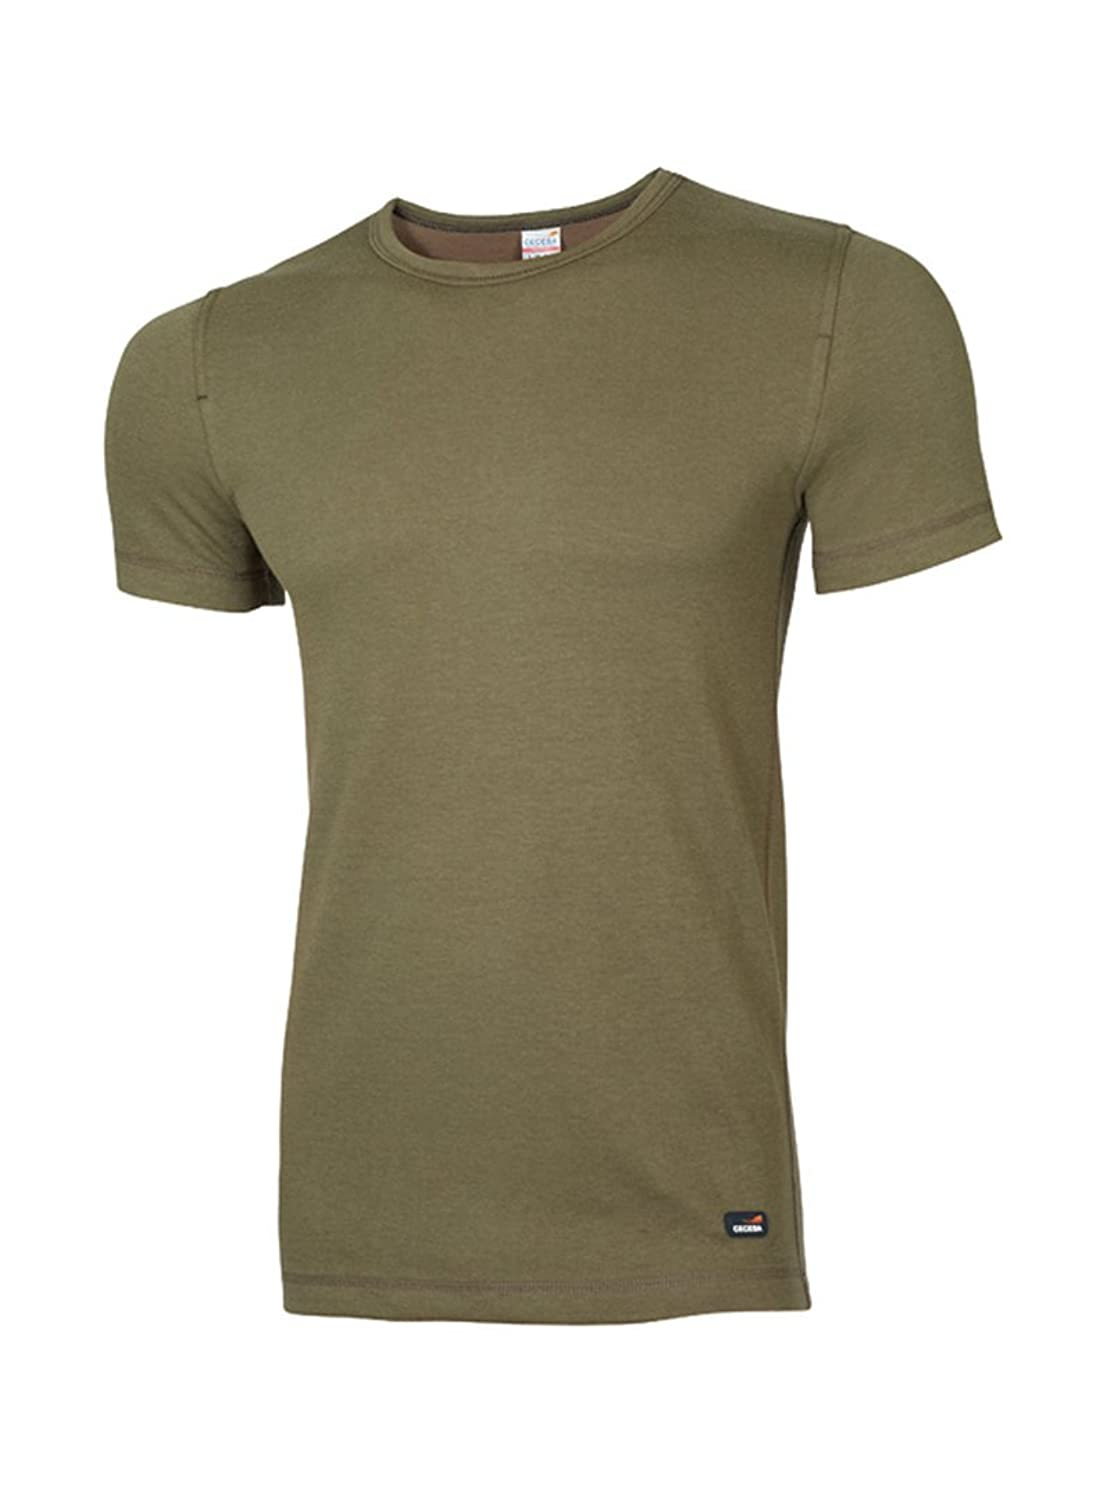 Ceceba 10026 Thermo Function T-Shirt 4er Pack - Navy, Grey Melange, Olive - M bis 2XL